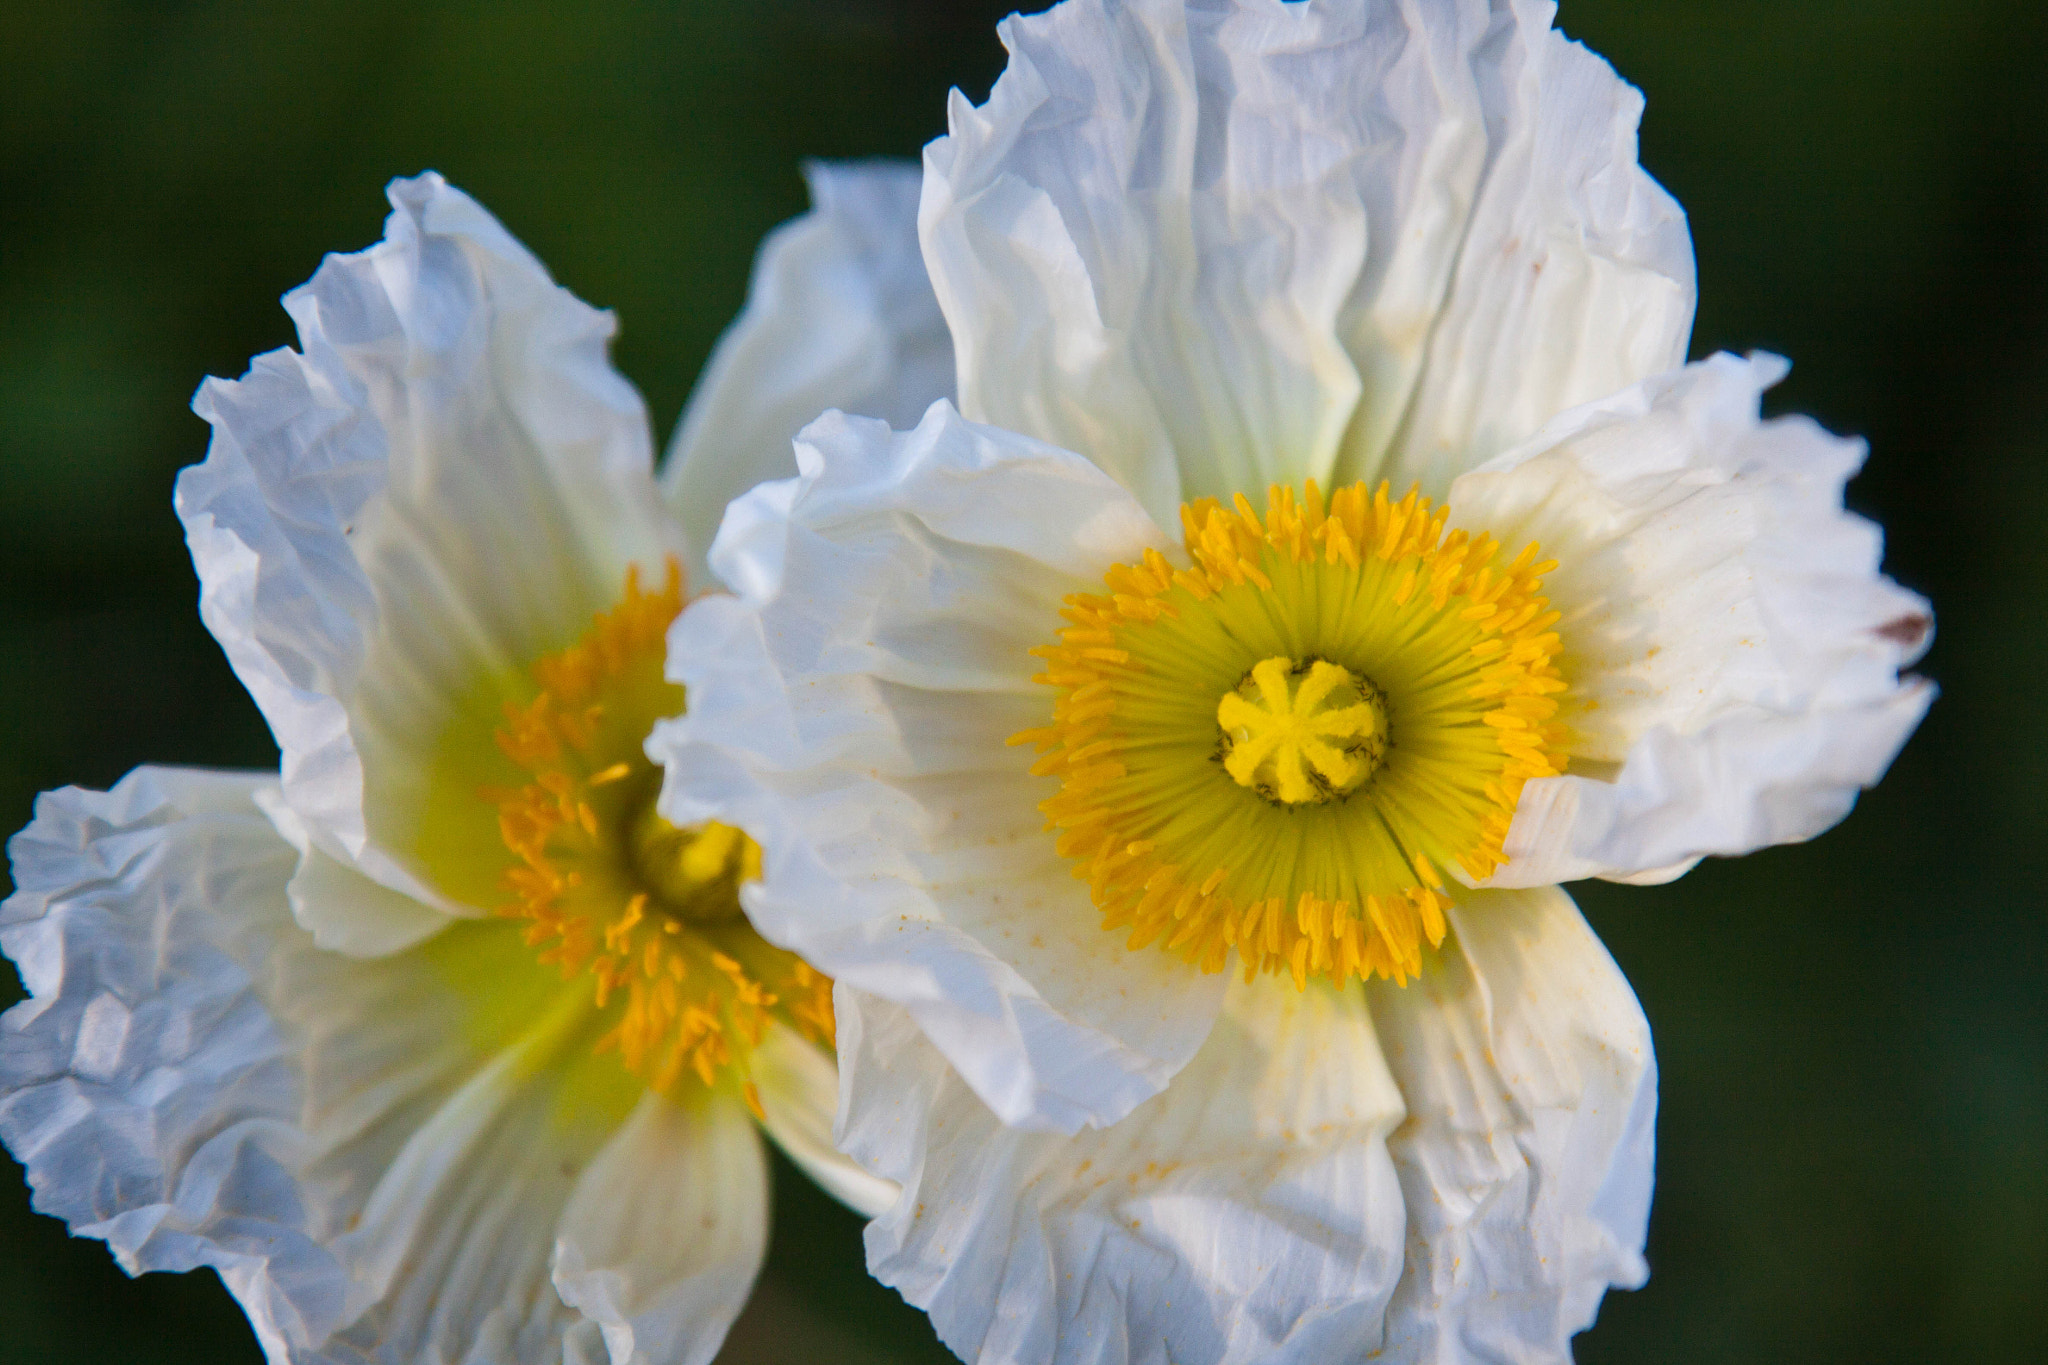 Photograph White Iceland Poppies by Kelly Phillips on 500px